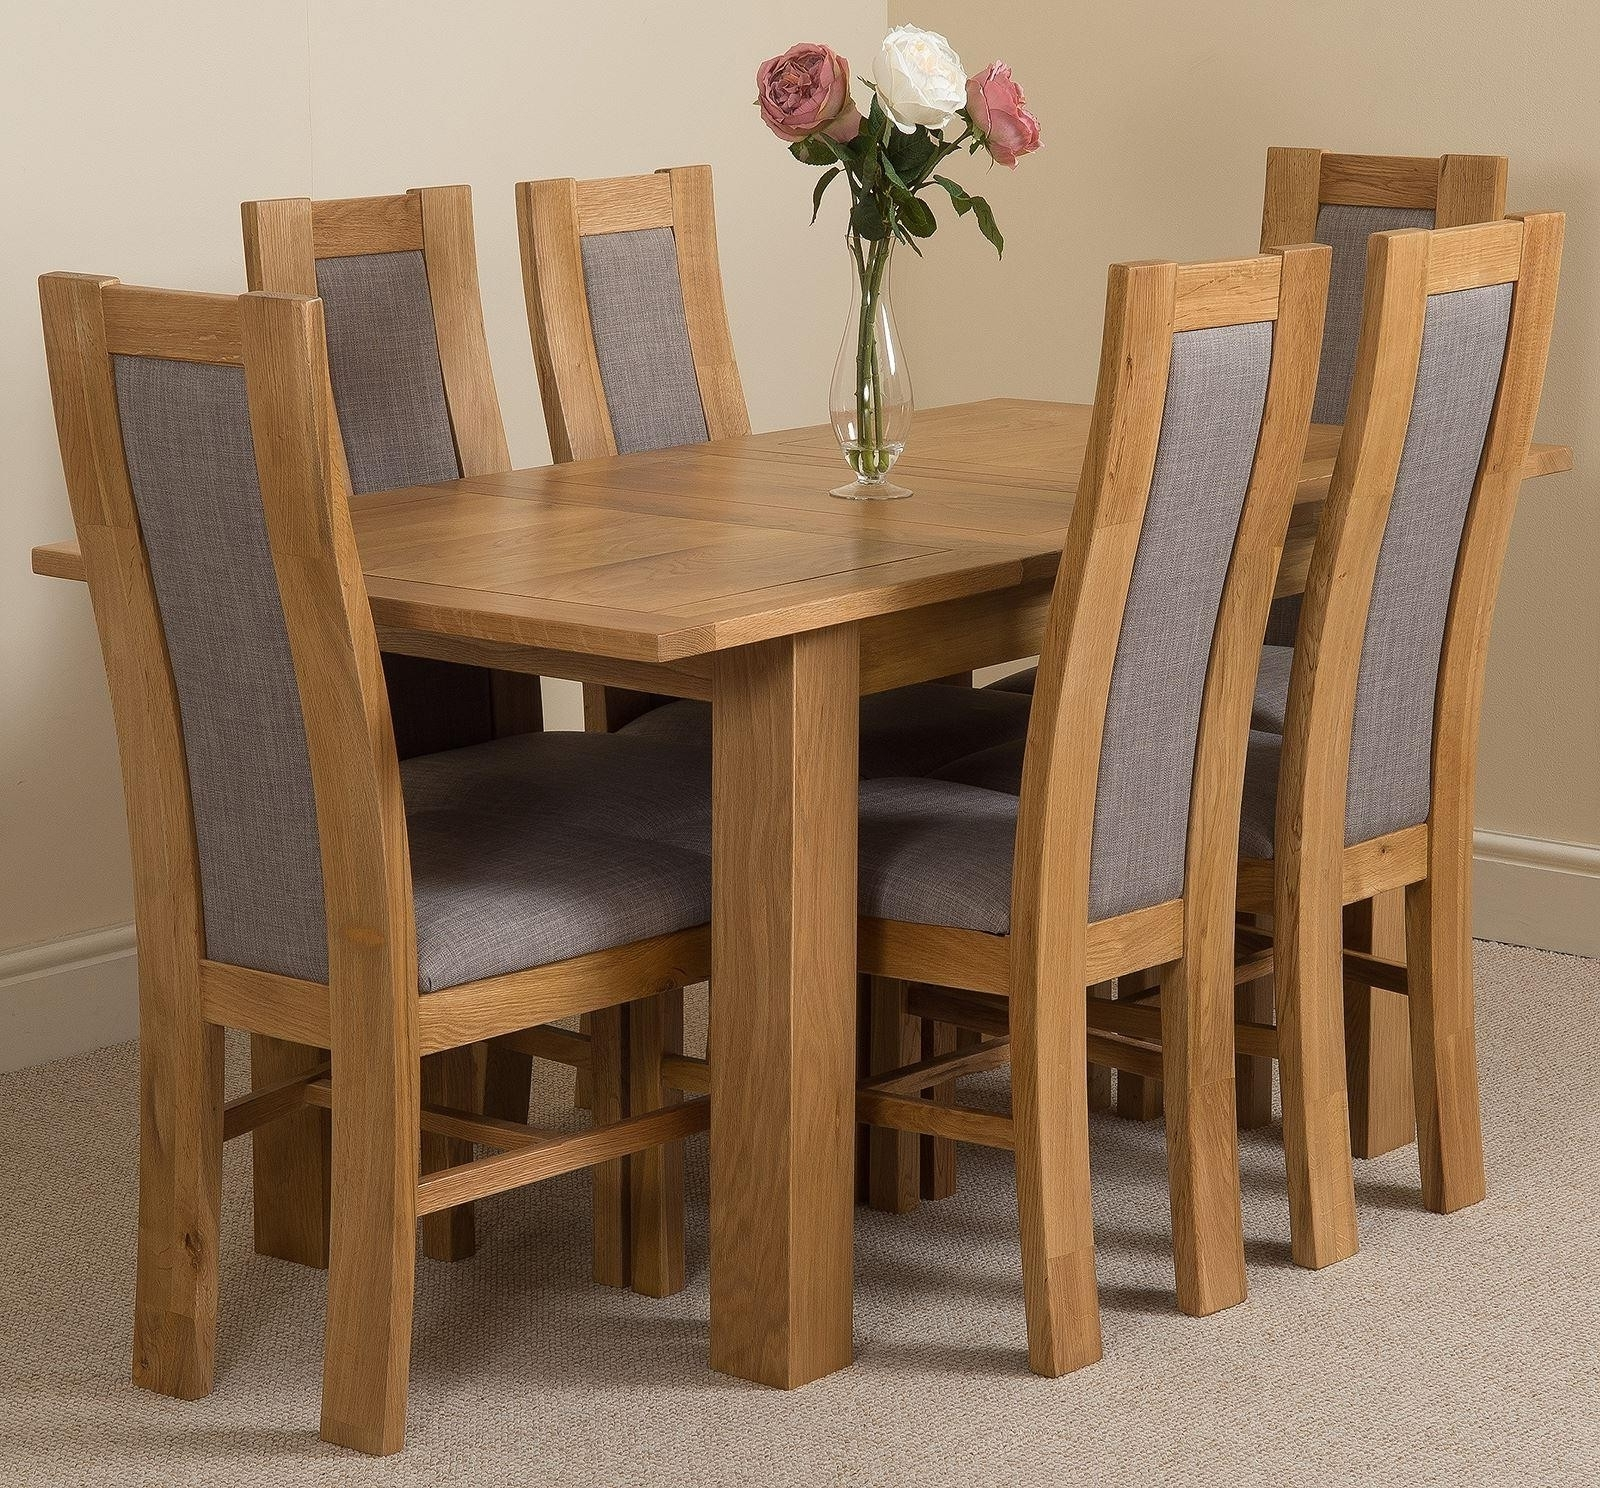 Solid Oak Dining Tables And 6 Chairs Regarding Well Known Hampton Dining Set With 6 Stanford Chairs (View 20 of 25)